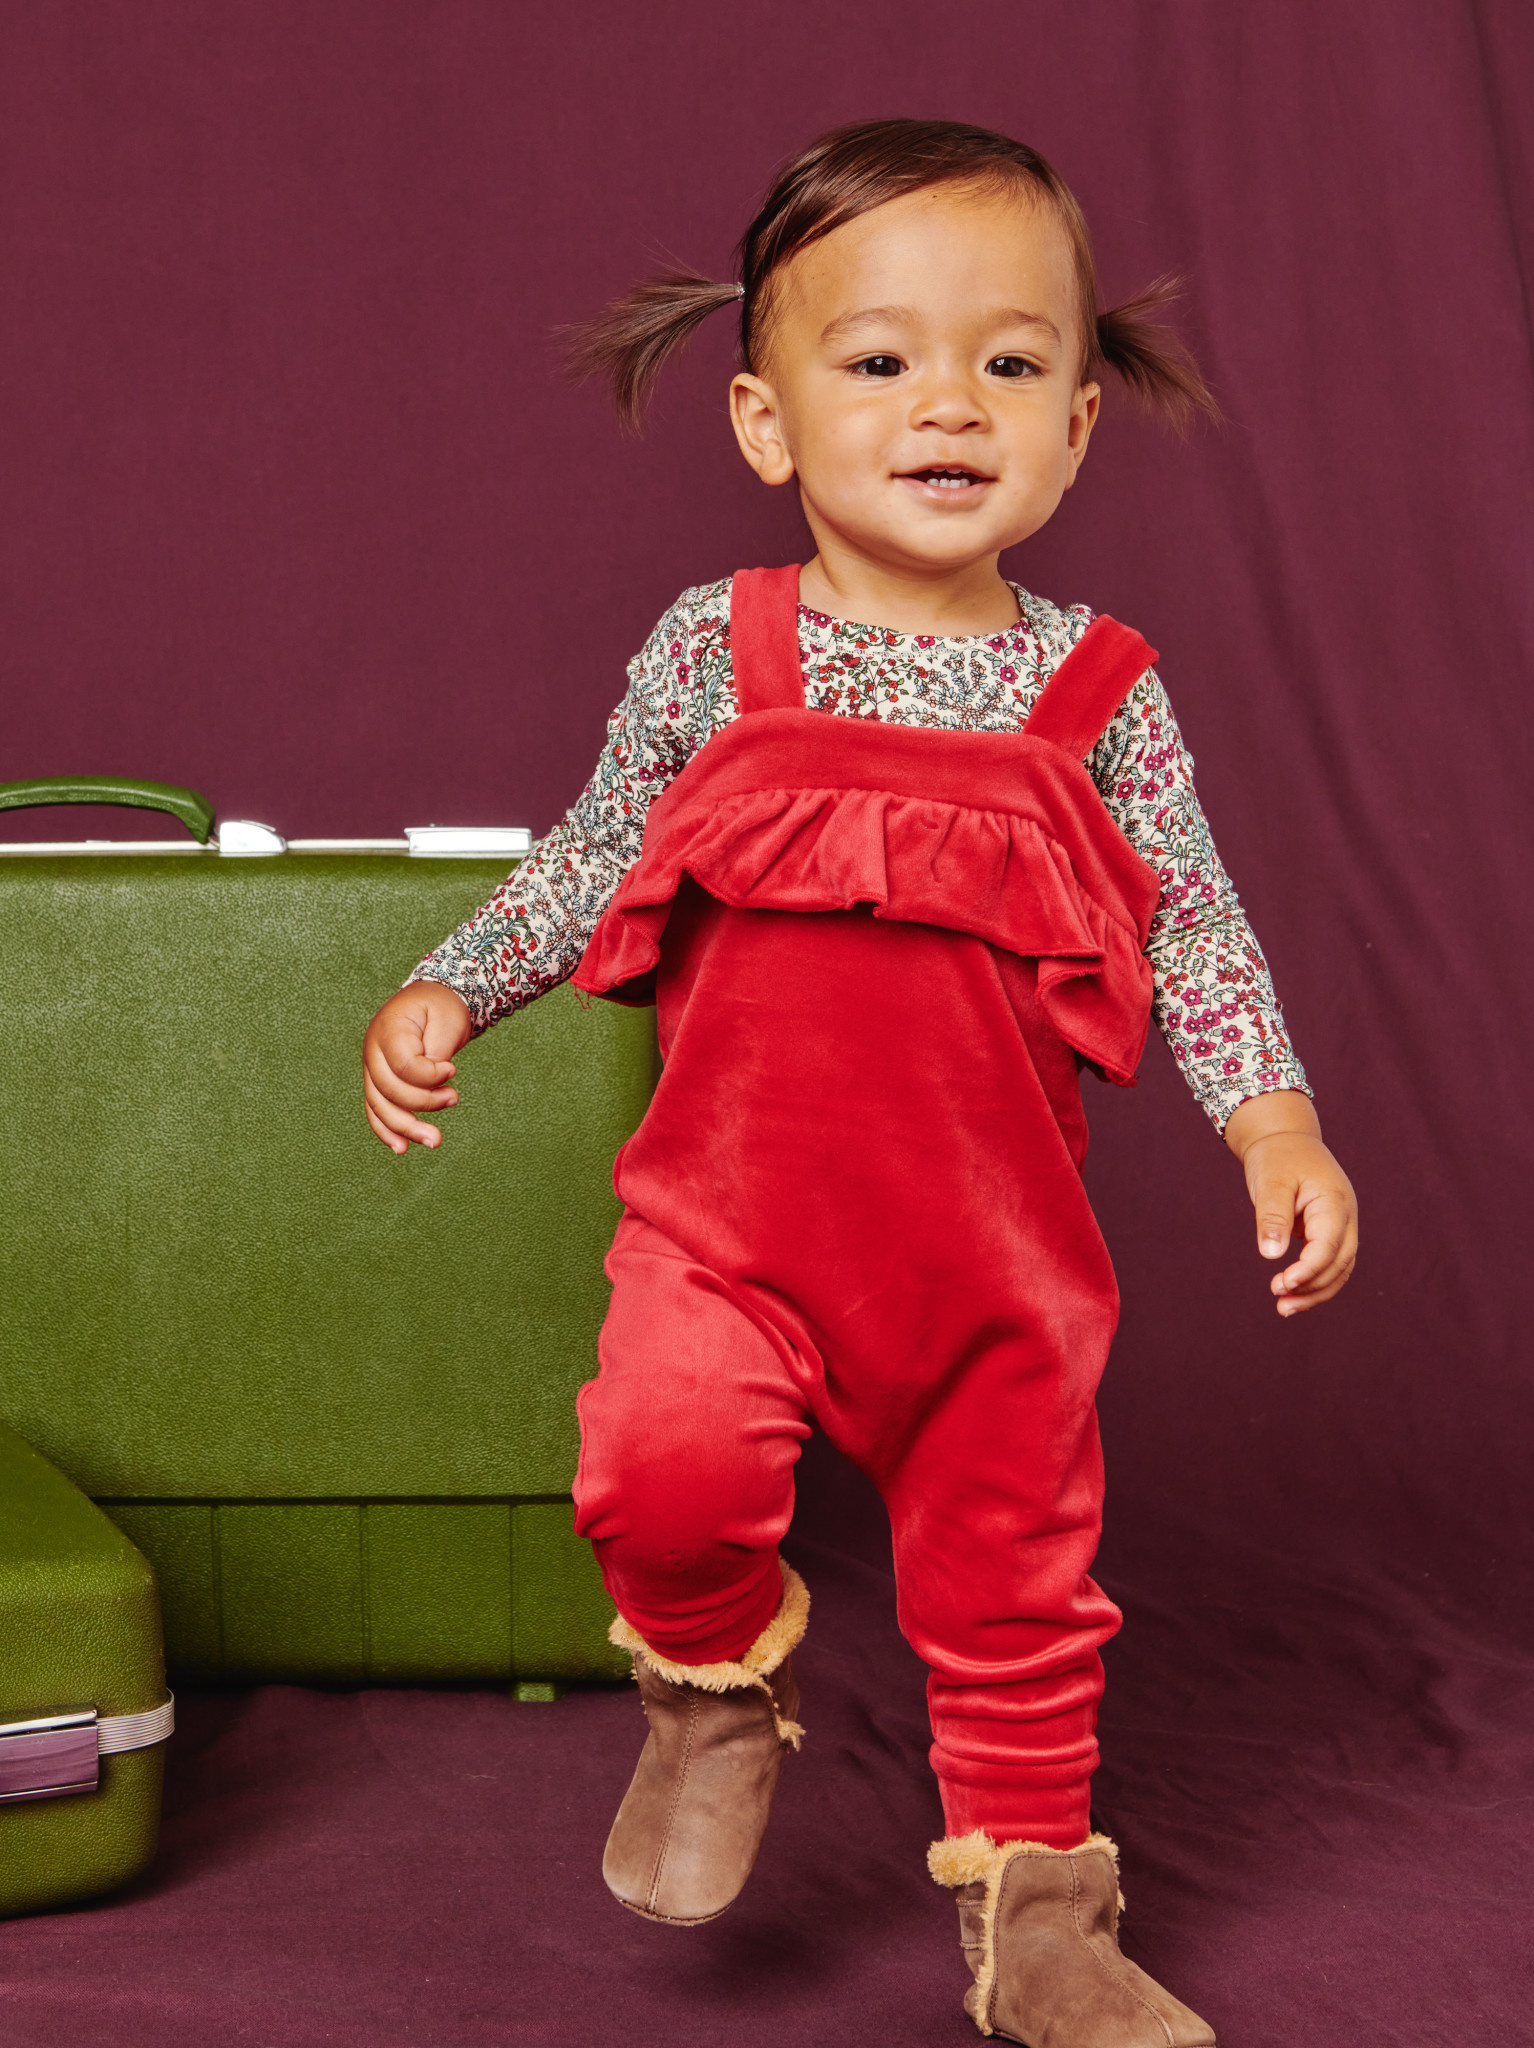 Tea Collection Dreamy Ruffle Baby Romper - Red Wagon